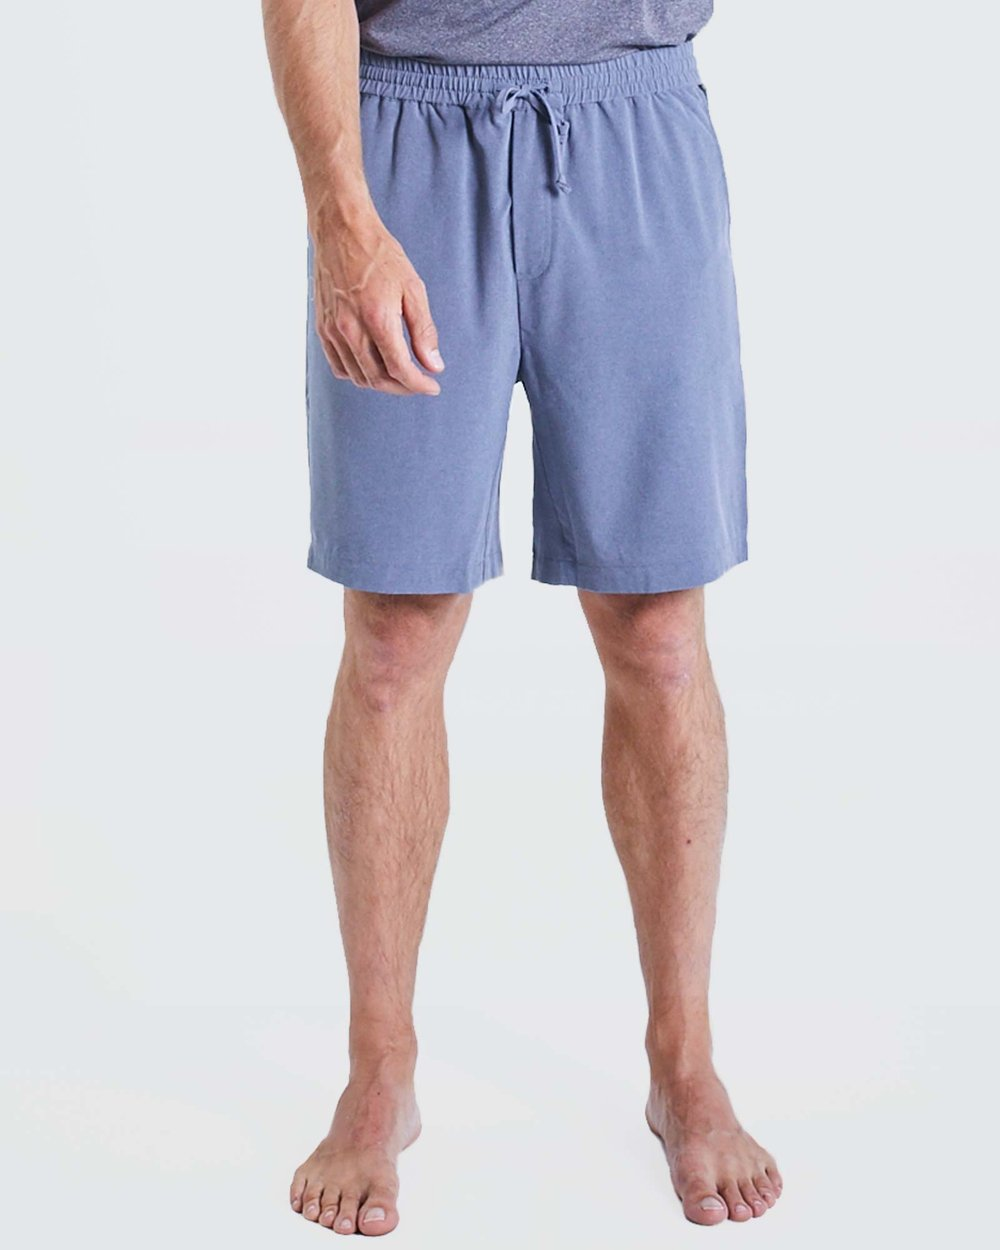 745e8dcd8d Eco Warrior II Shorts by OHMME Online | THE ICONIC | Australia